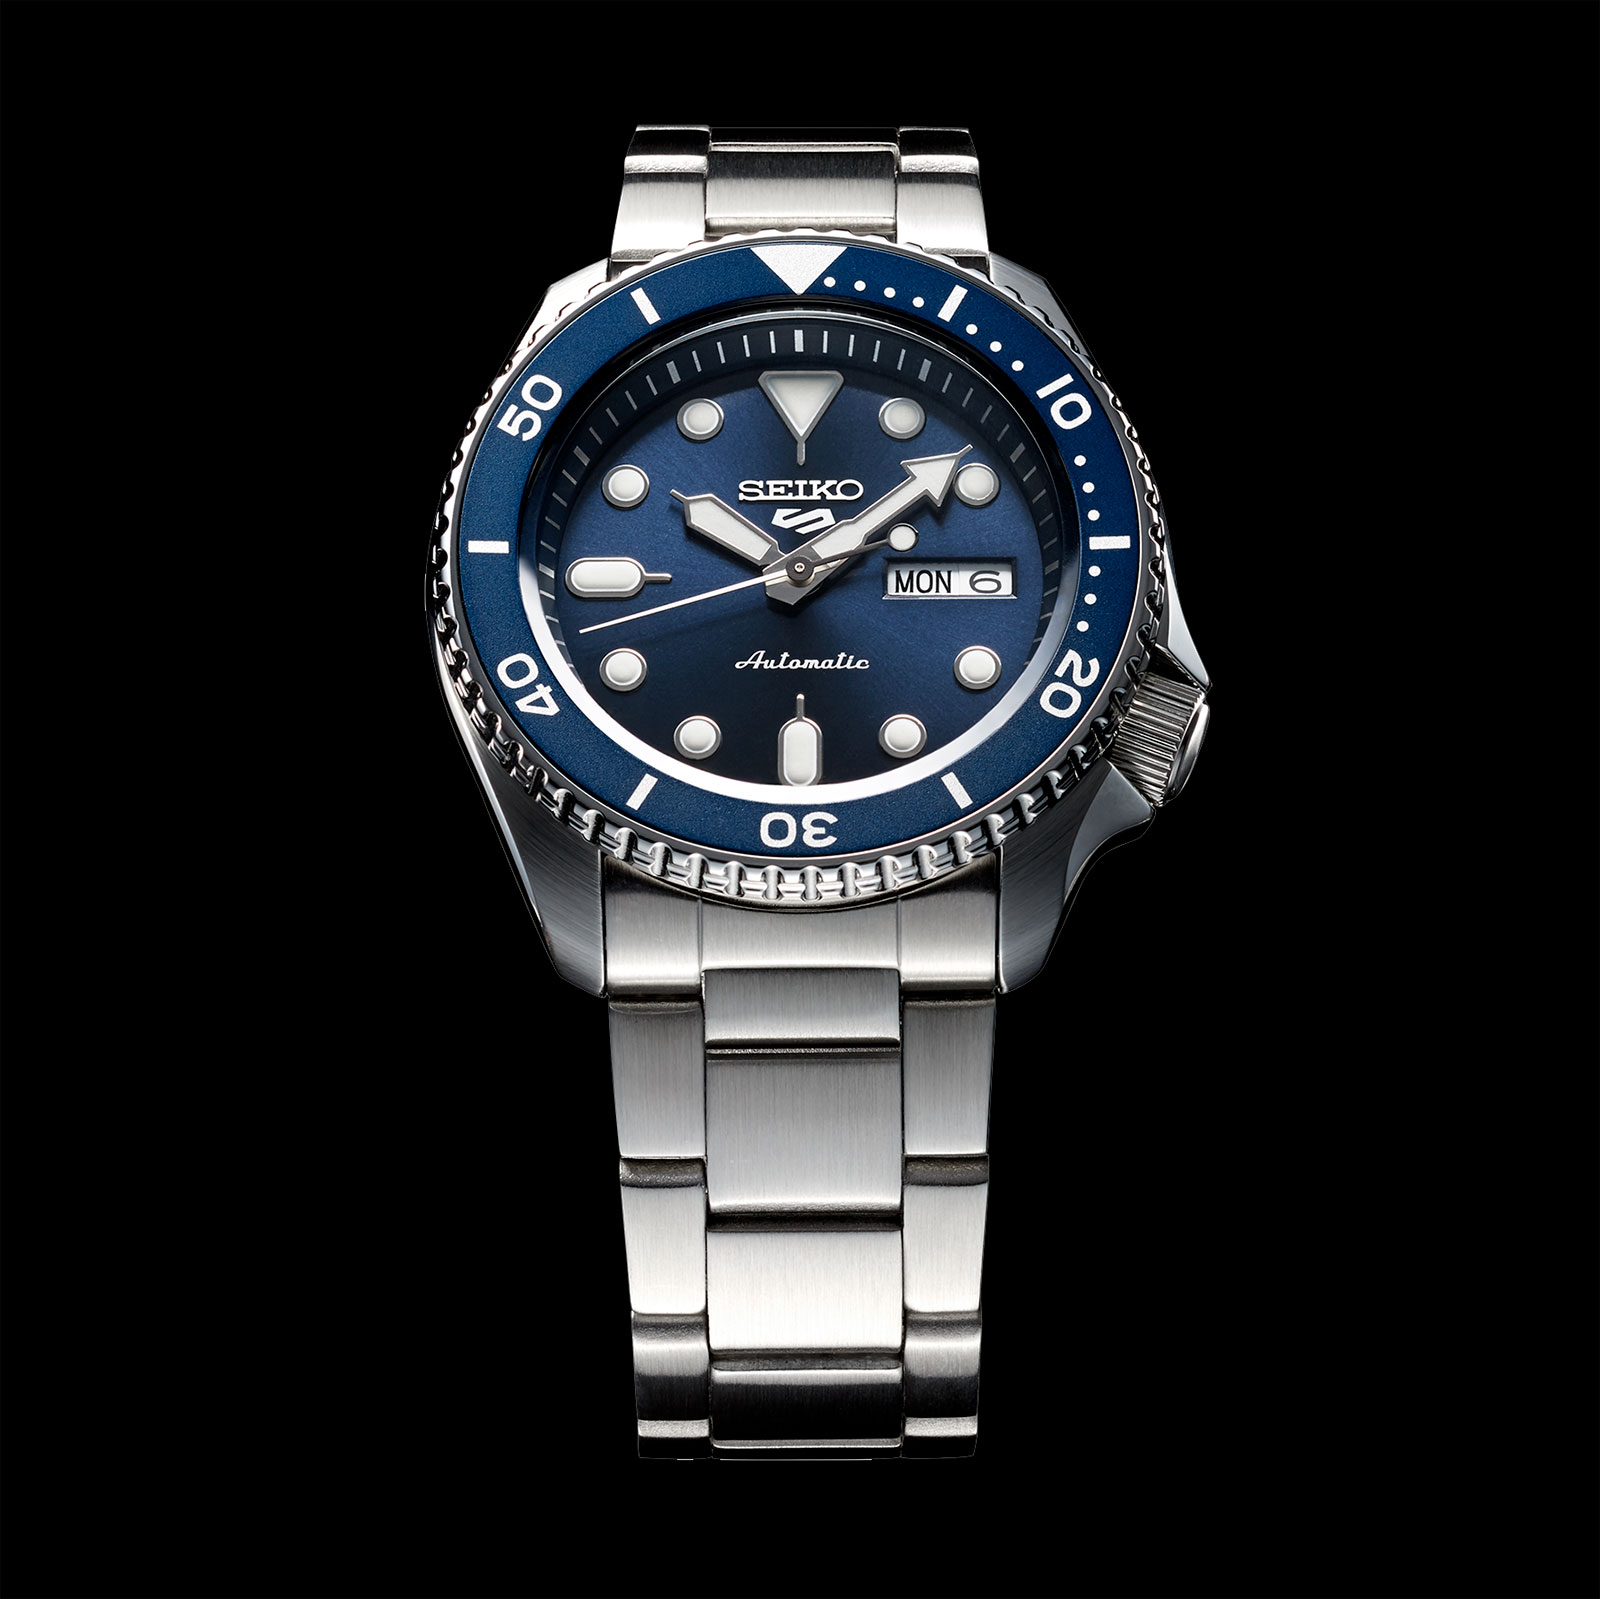 Introducing The New Seiko 5 Sports Collection Sjx Watches